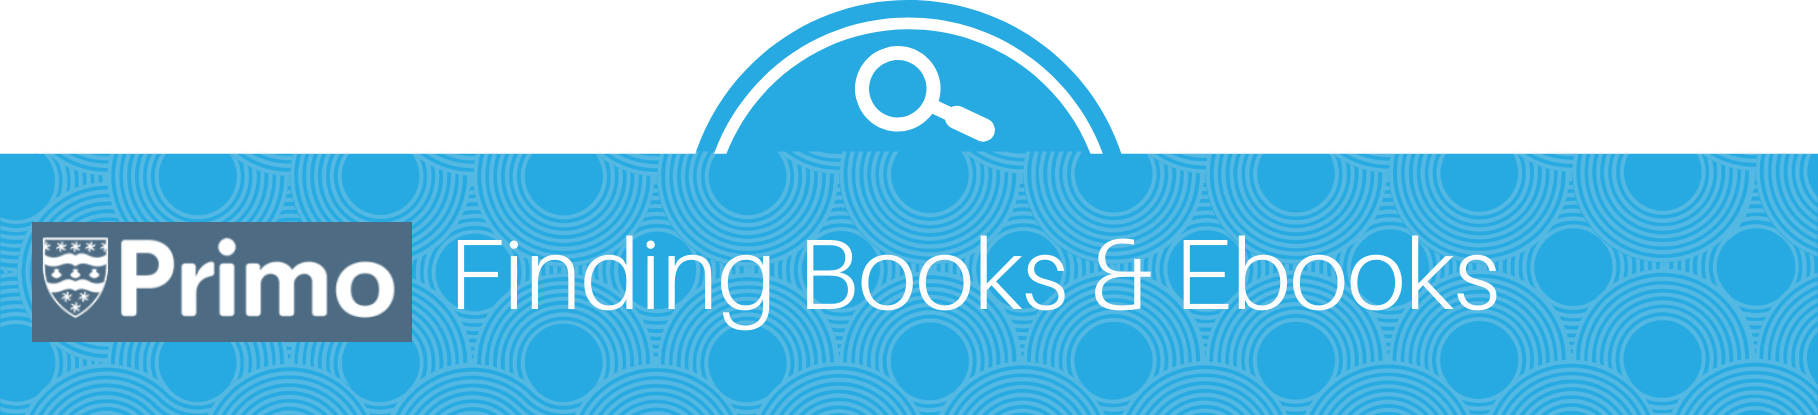 how to find books using Primo